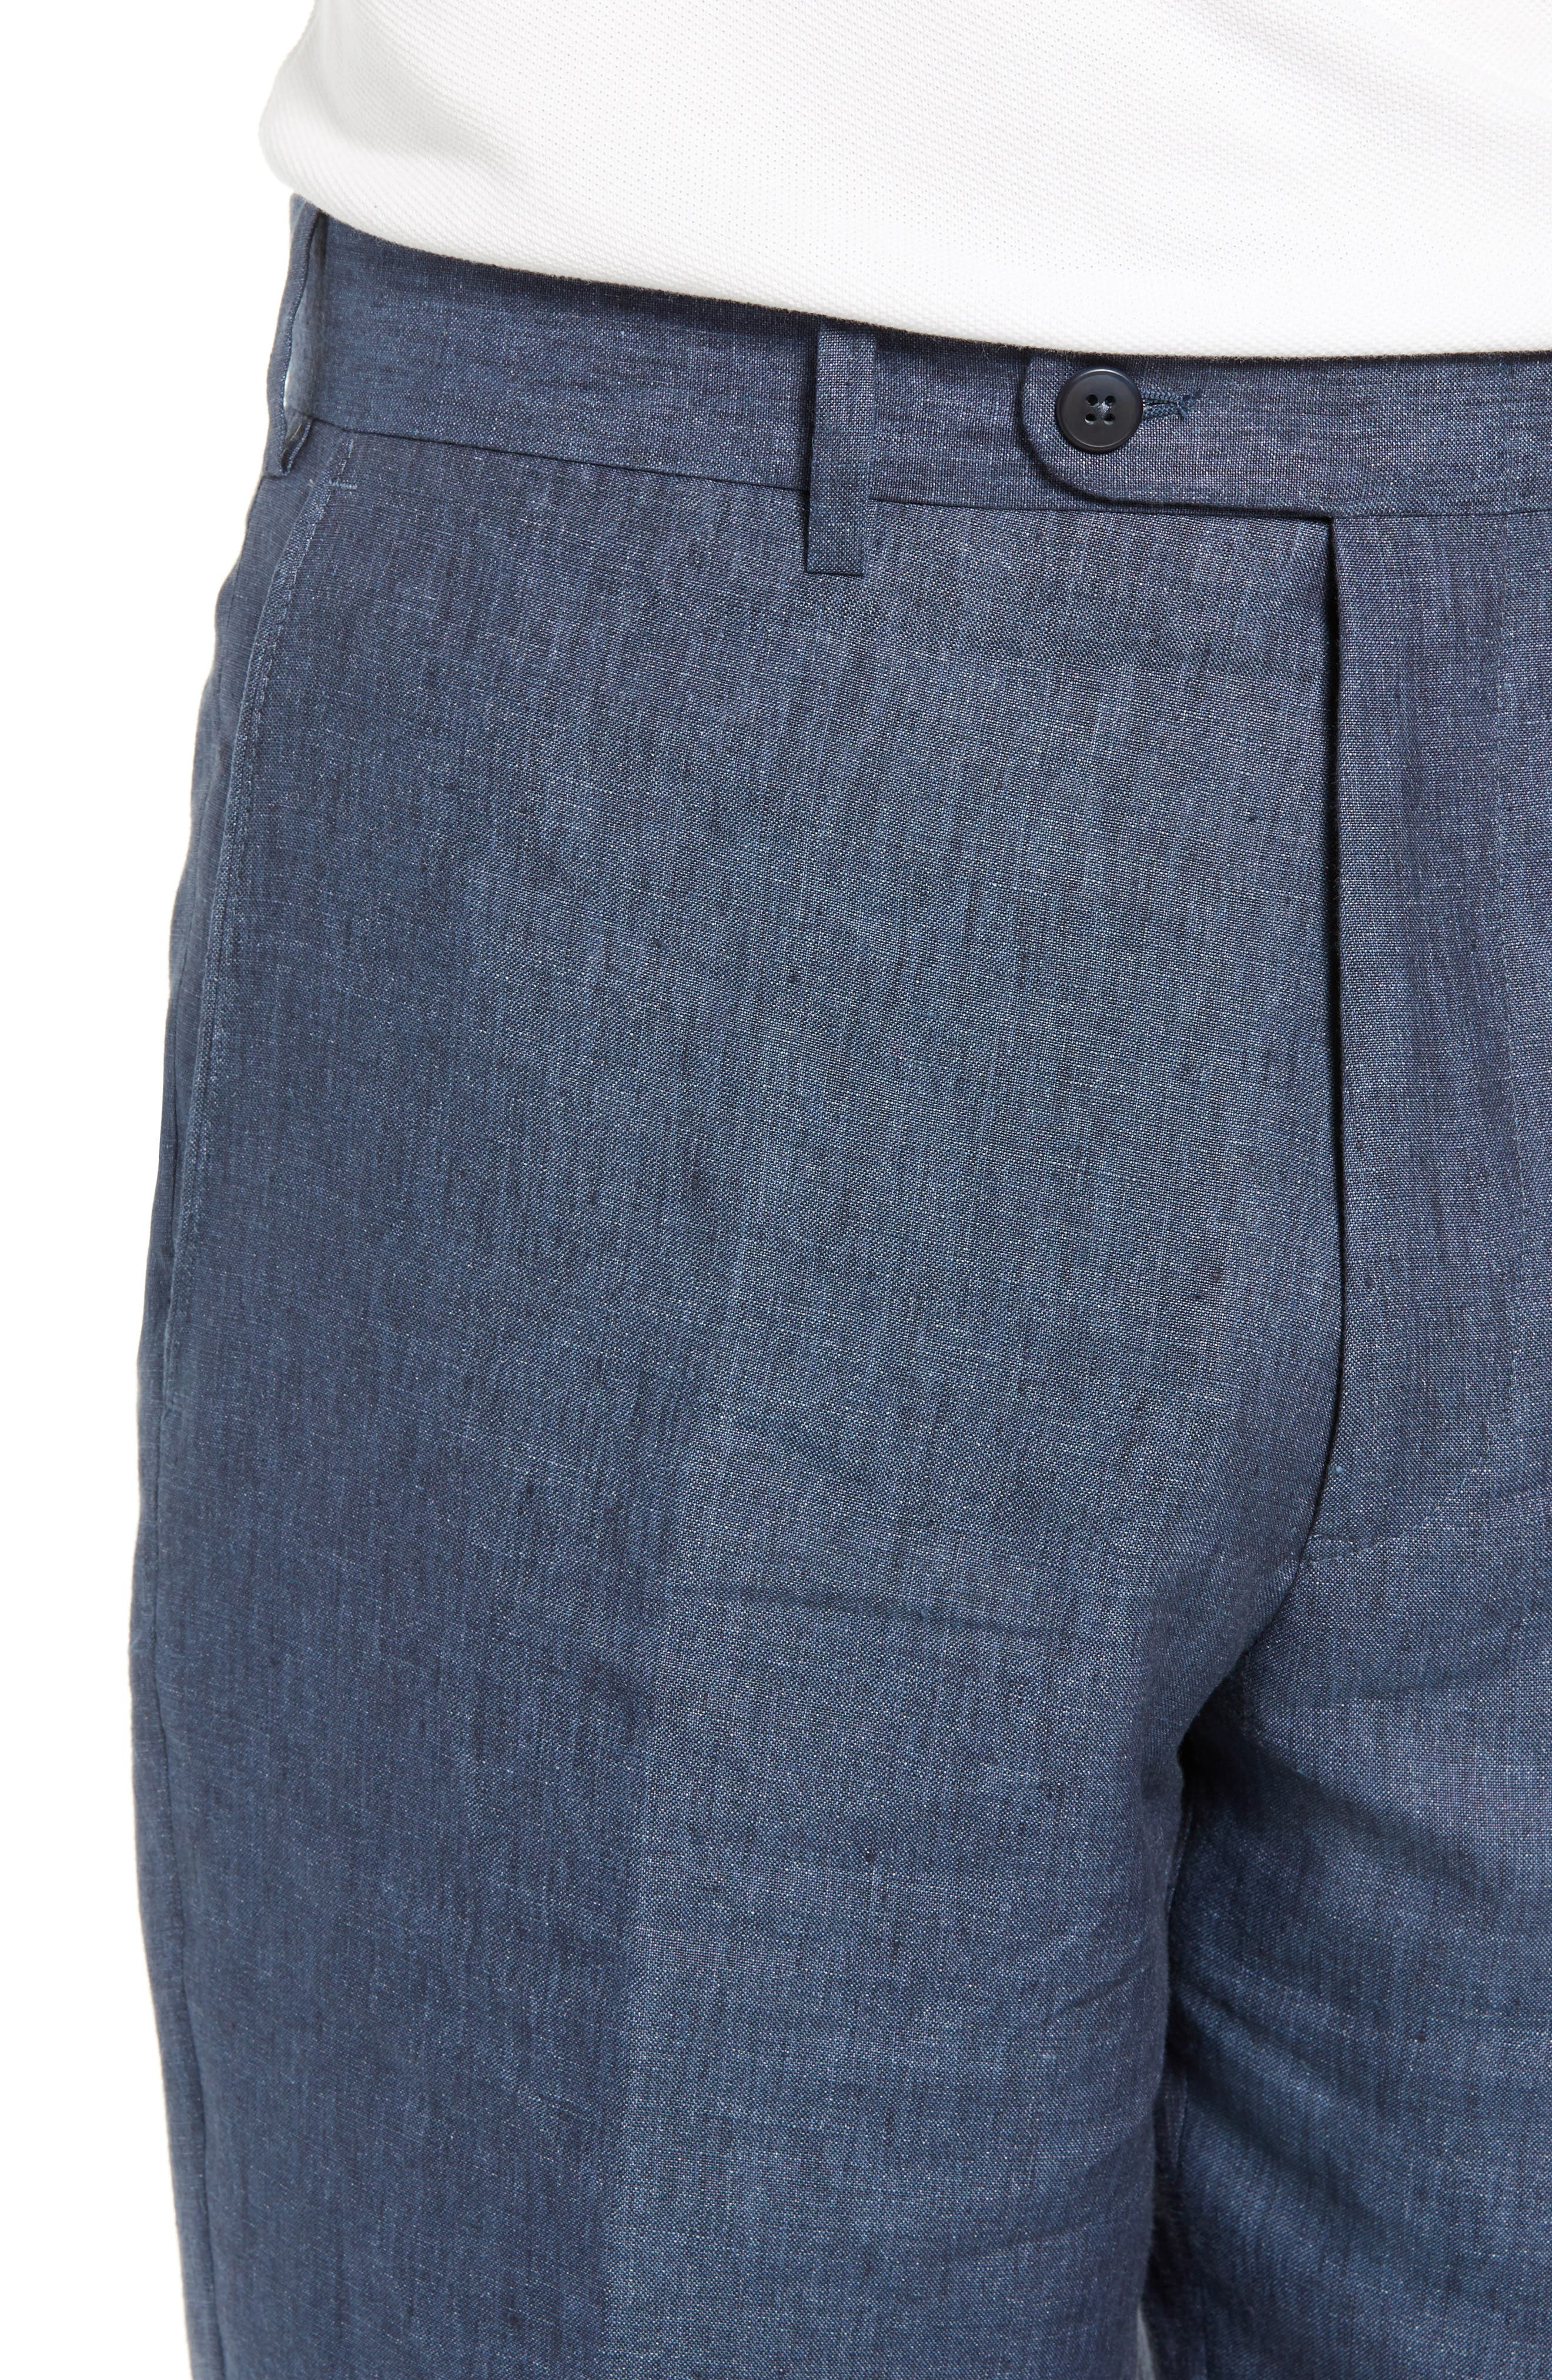 JOHN W. NORDSTROM<SUP>®</SUP>, Torino Flat Front Solid Linen Trousers, Alternate thumbnail 4, color, 420